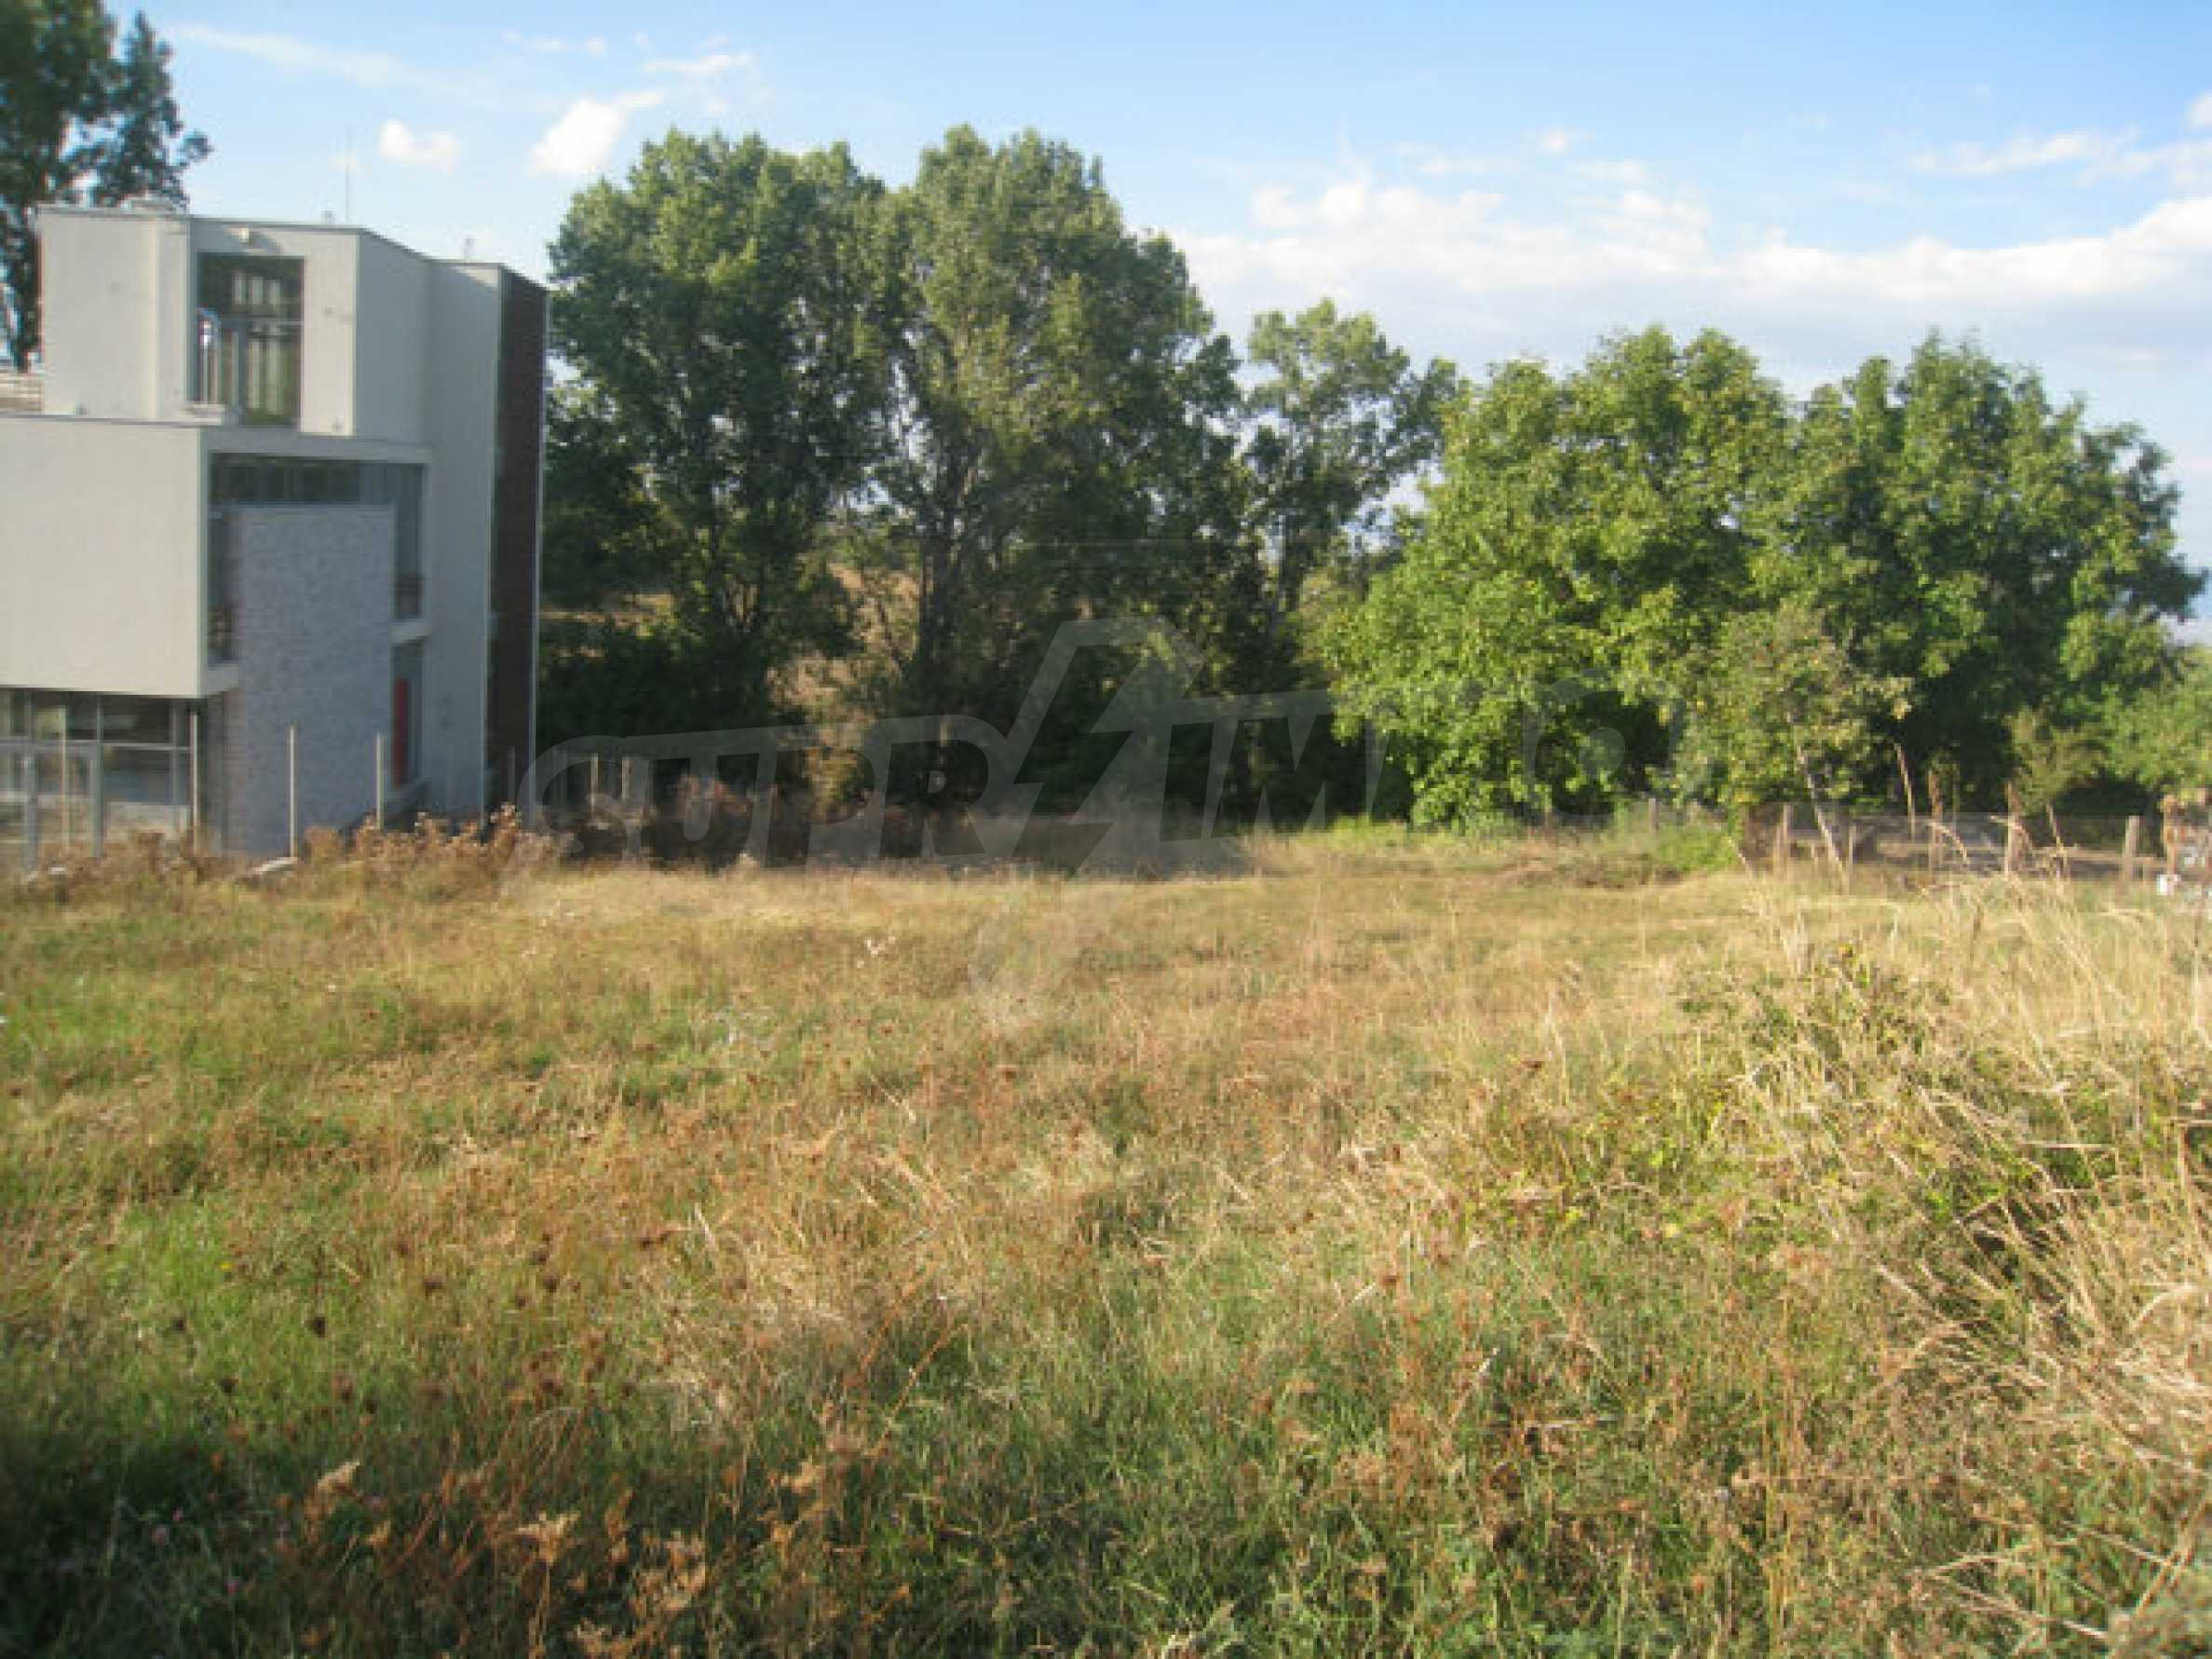 Regulated plot of land for rural private house or villa near Sofia 1